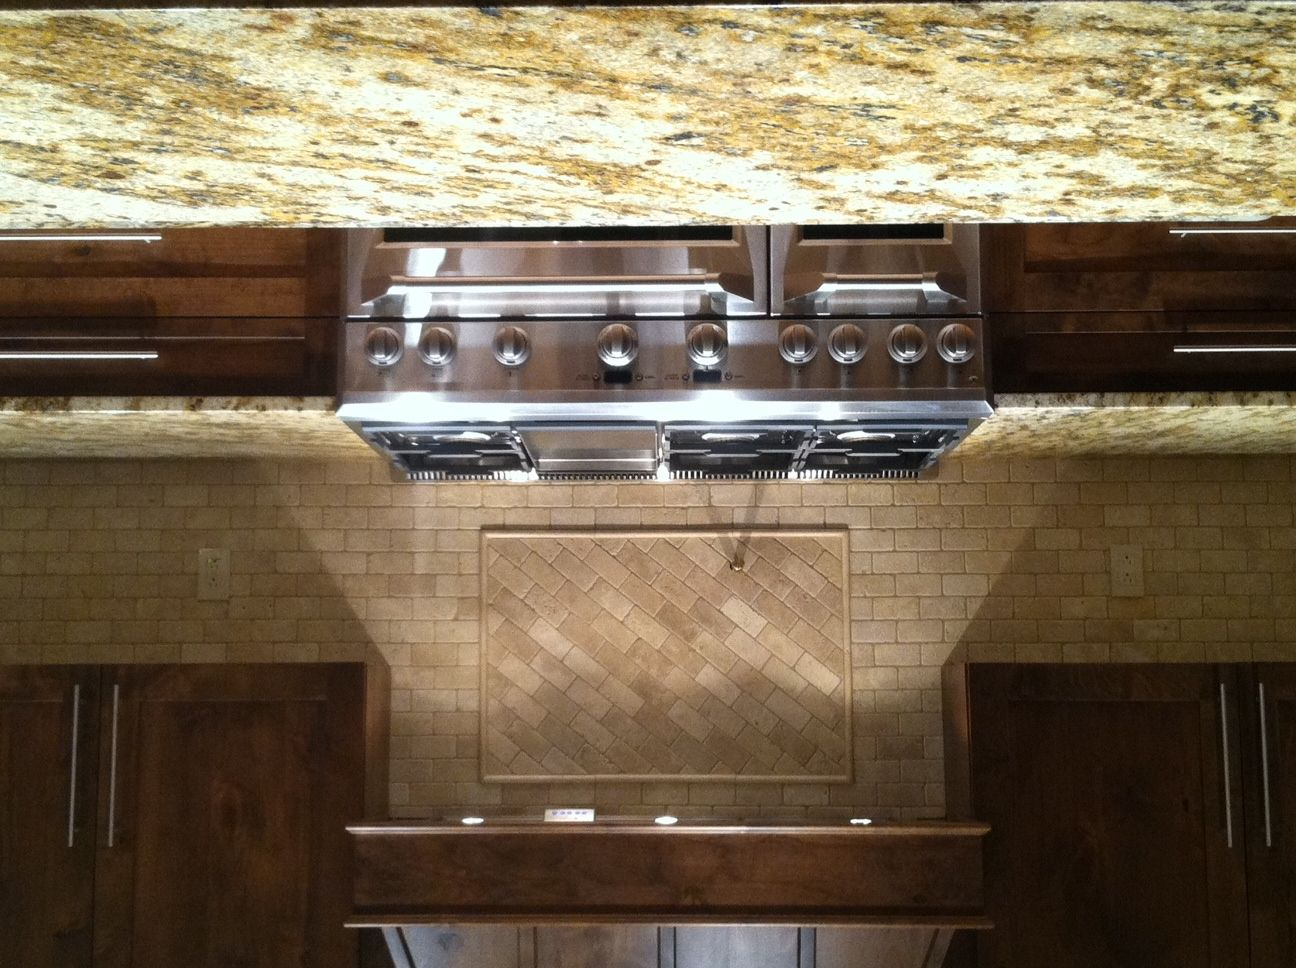 Subway Tiles Kitchen Backsplash Kitchen Backsplash Interior Design Subway Tile Backsplash